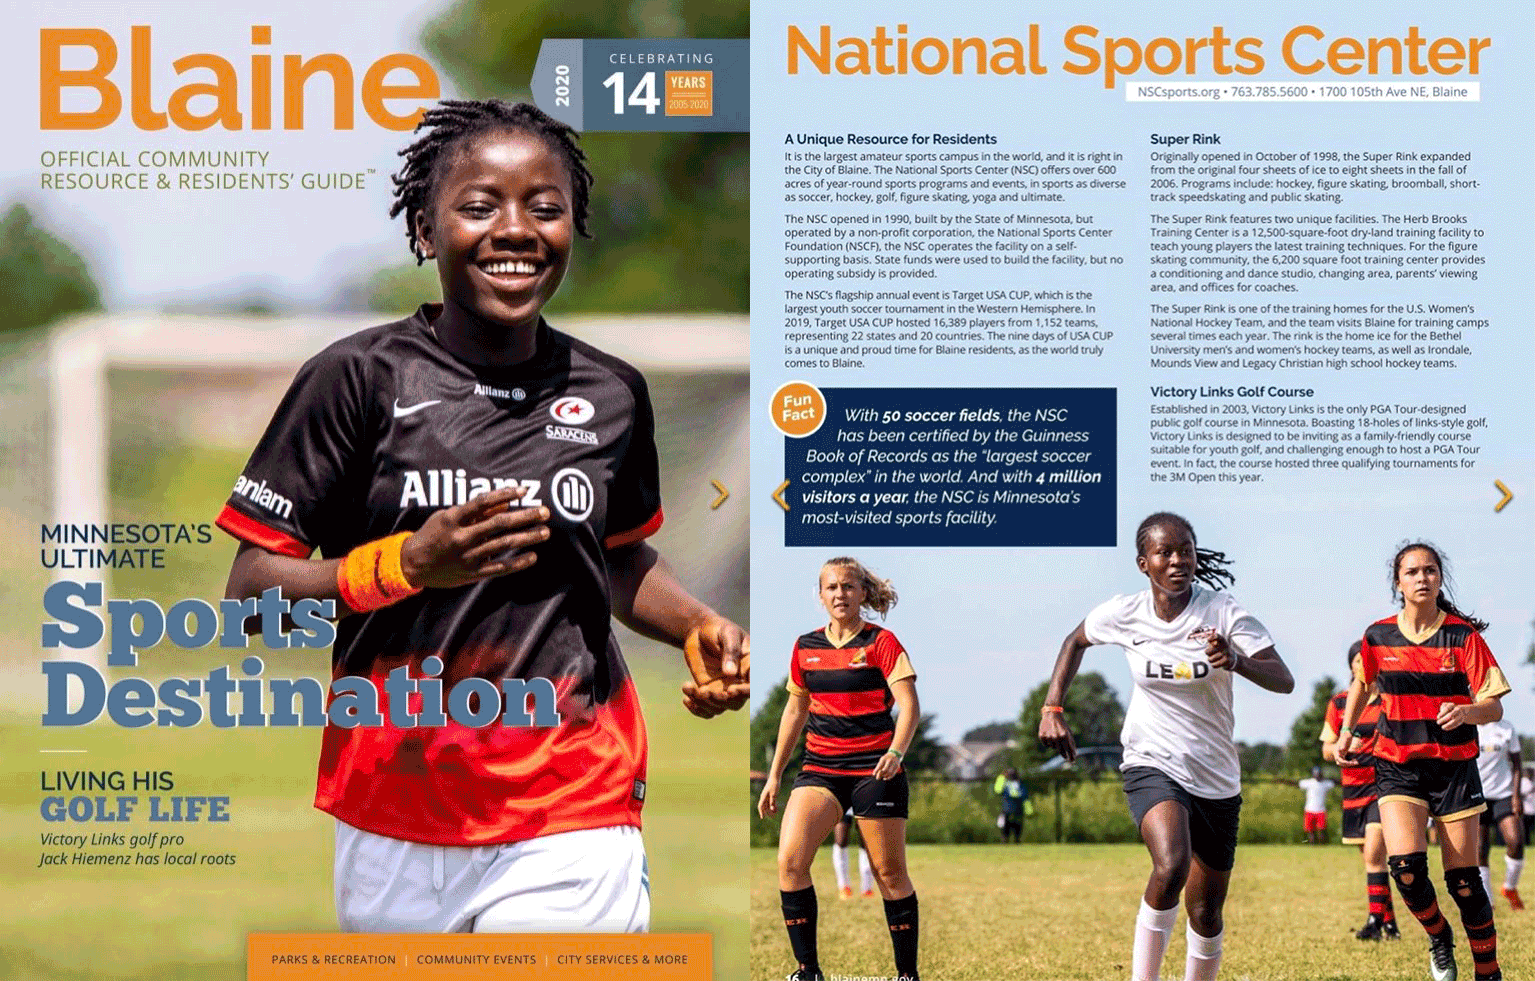 The Blaine Community Guide highlighted the NSC as Minnesota's ultimate sports destination, emphasizing the organization's largest event, Target USA CUP, and the economic impact that NSC events bring to the community.